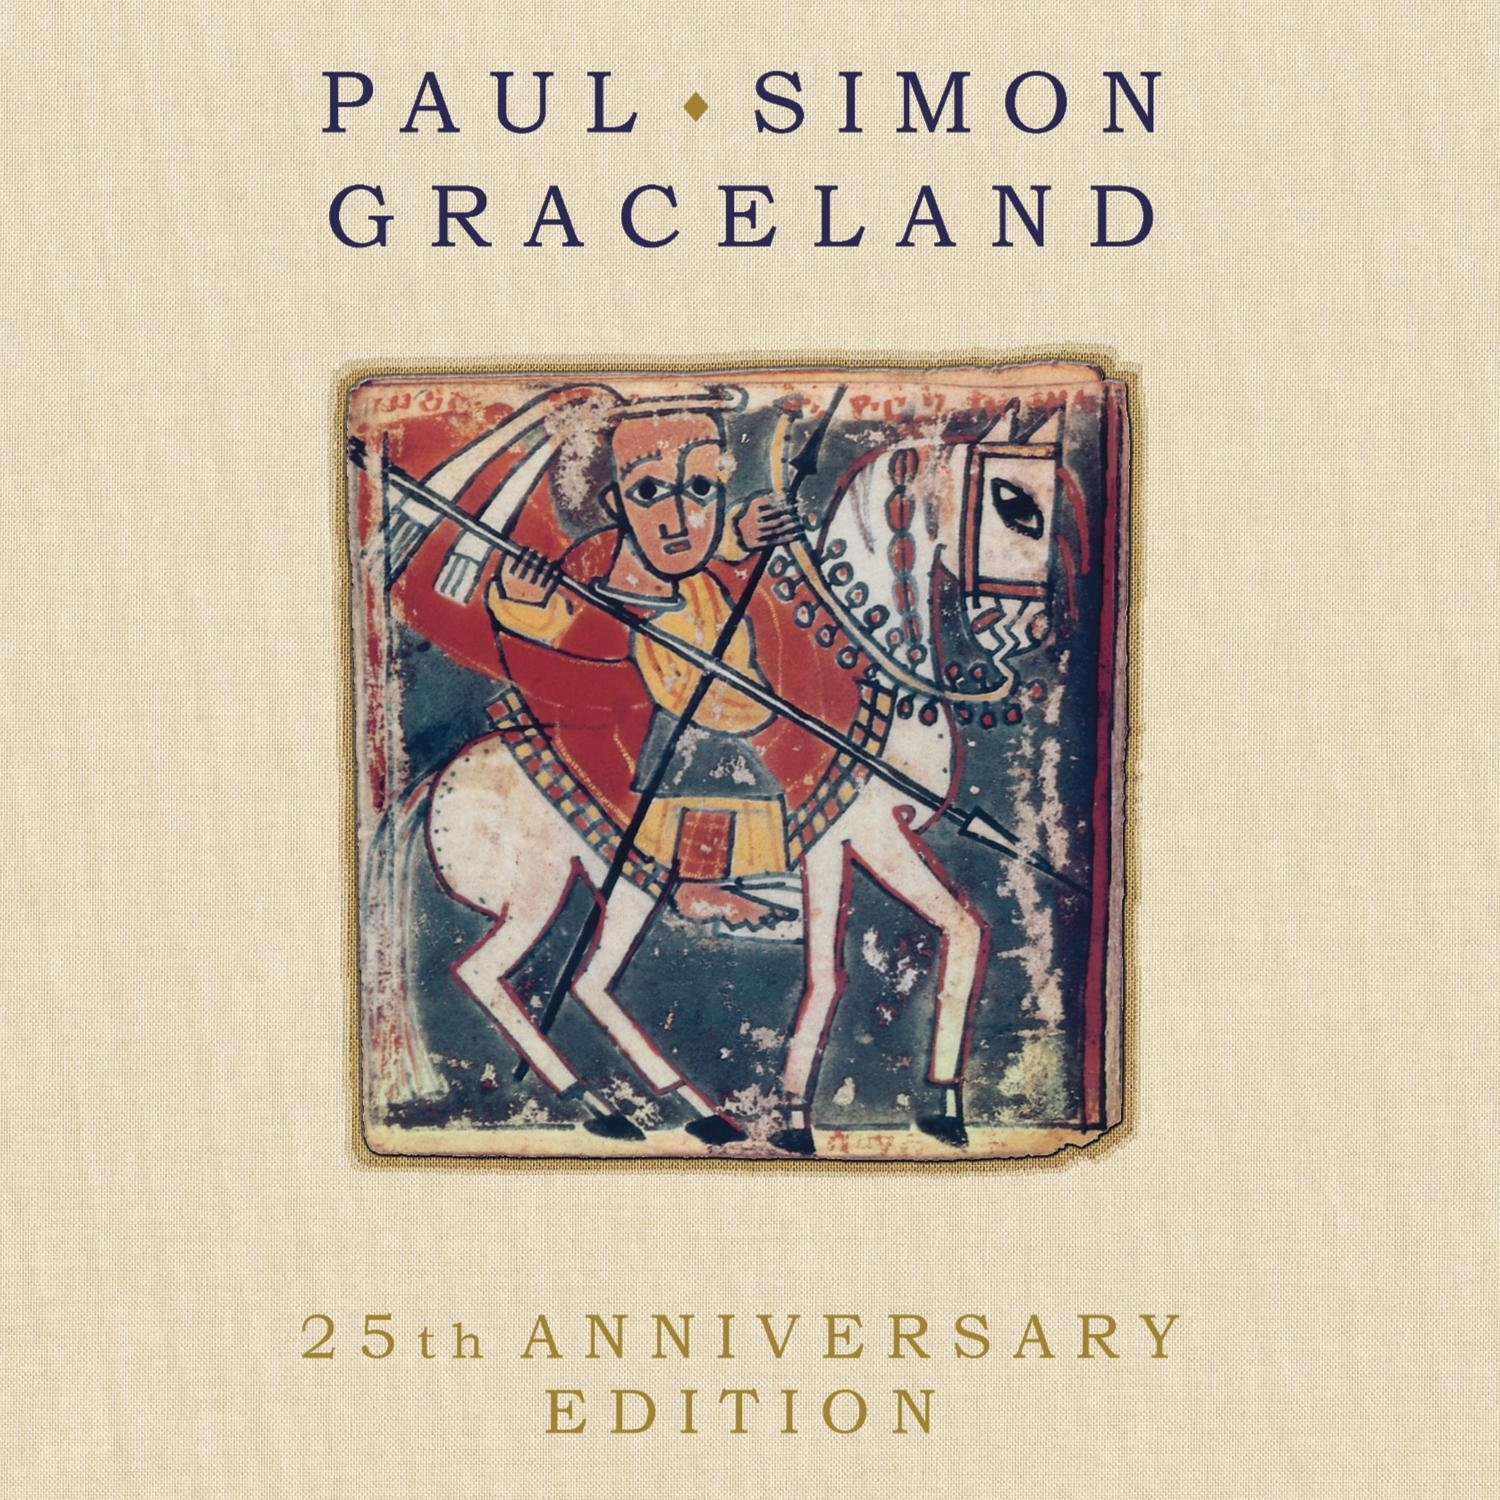 Graceland 25th Anniversary Edition CD/DVD (featuring ''Under African Skies'' film) by Sony Legacy